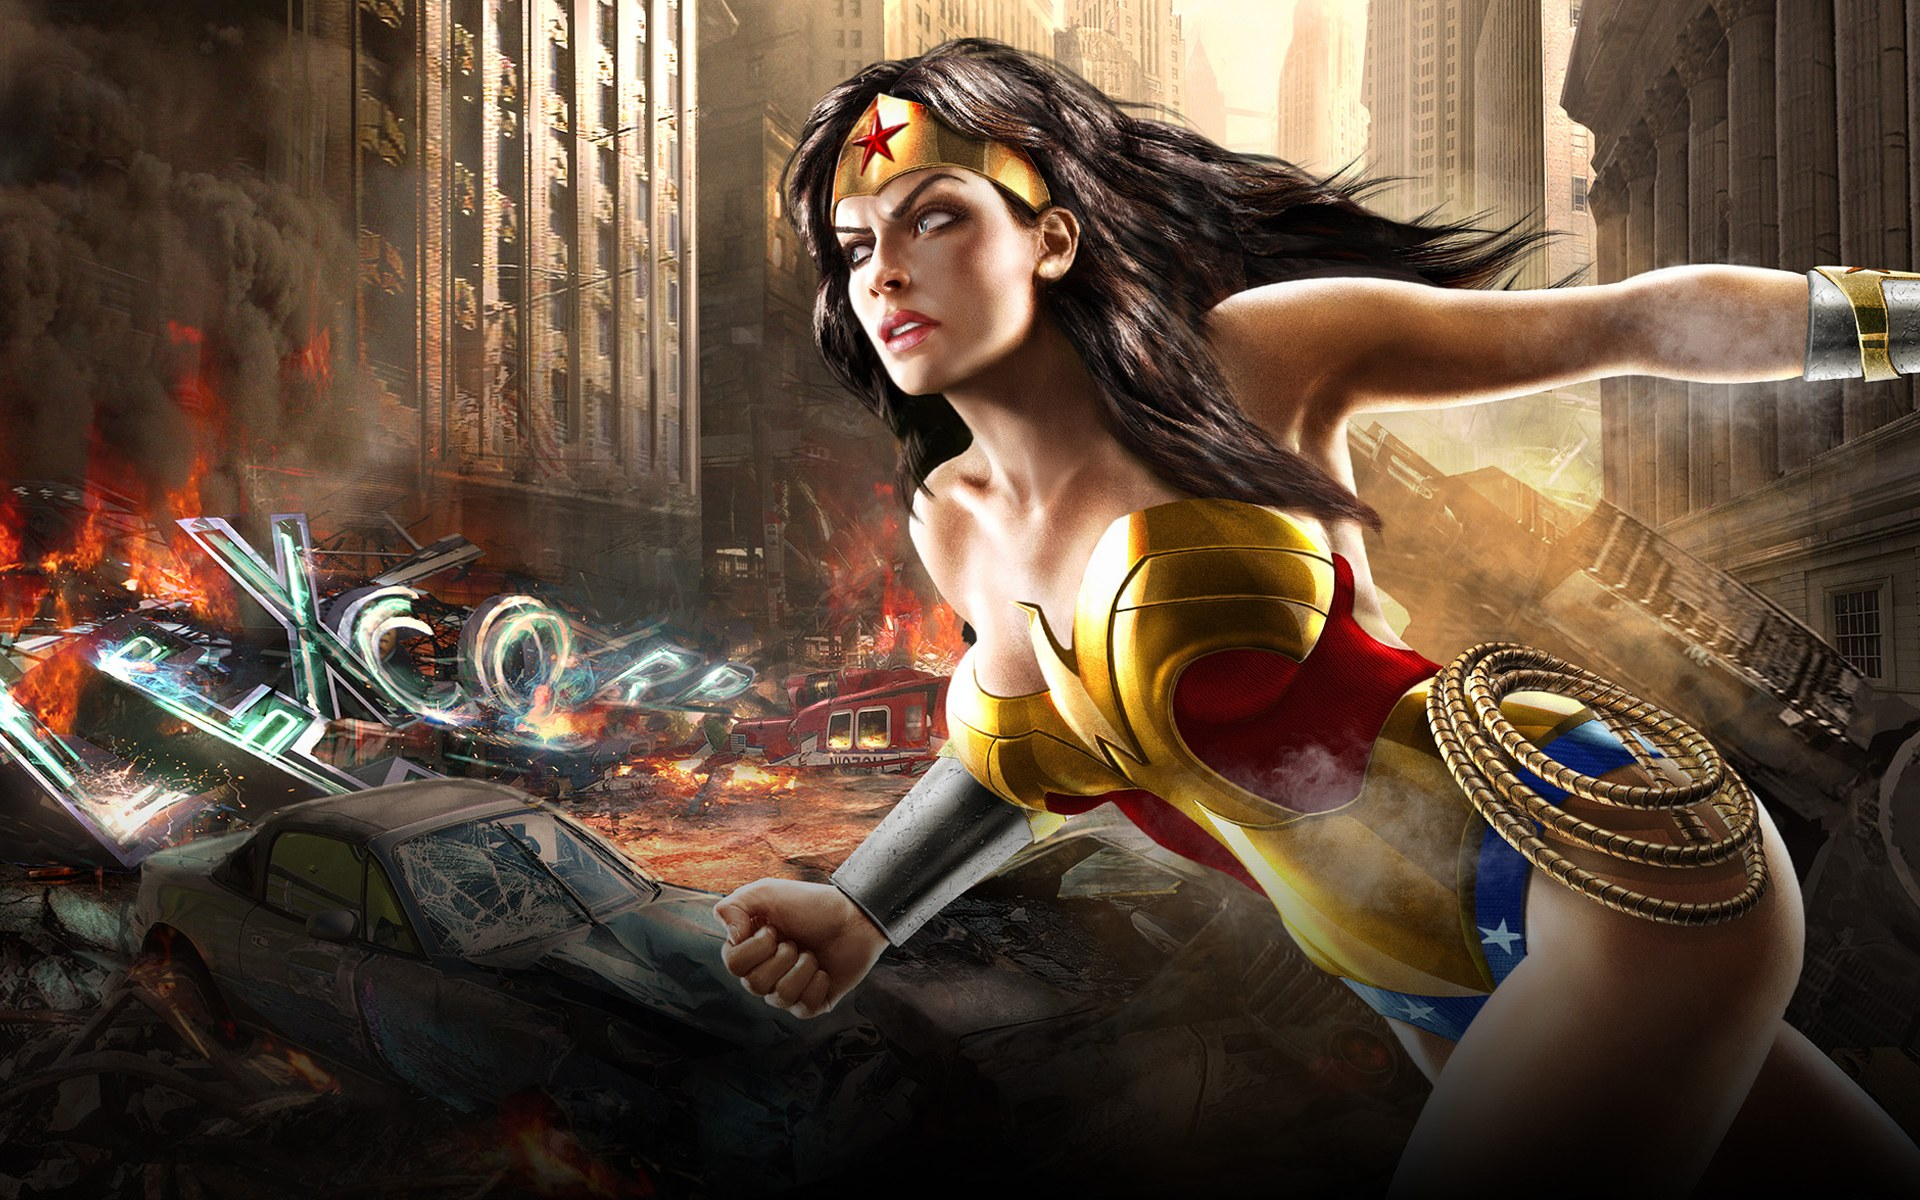 Wonder Woman Images HD Wallpaper And Background Photos